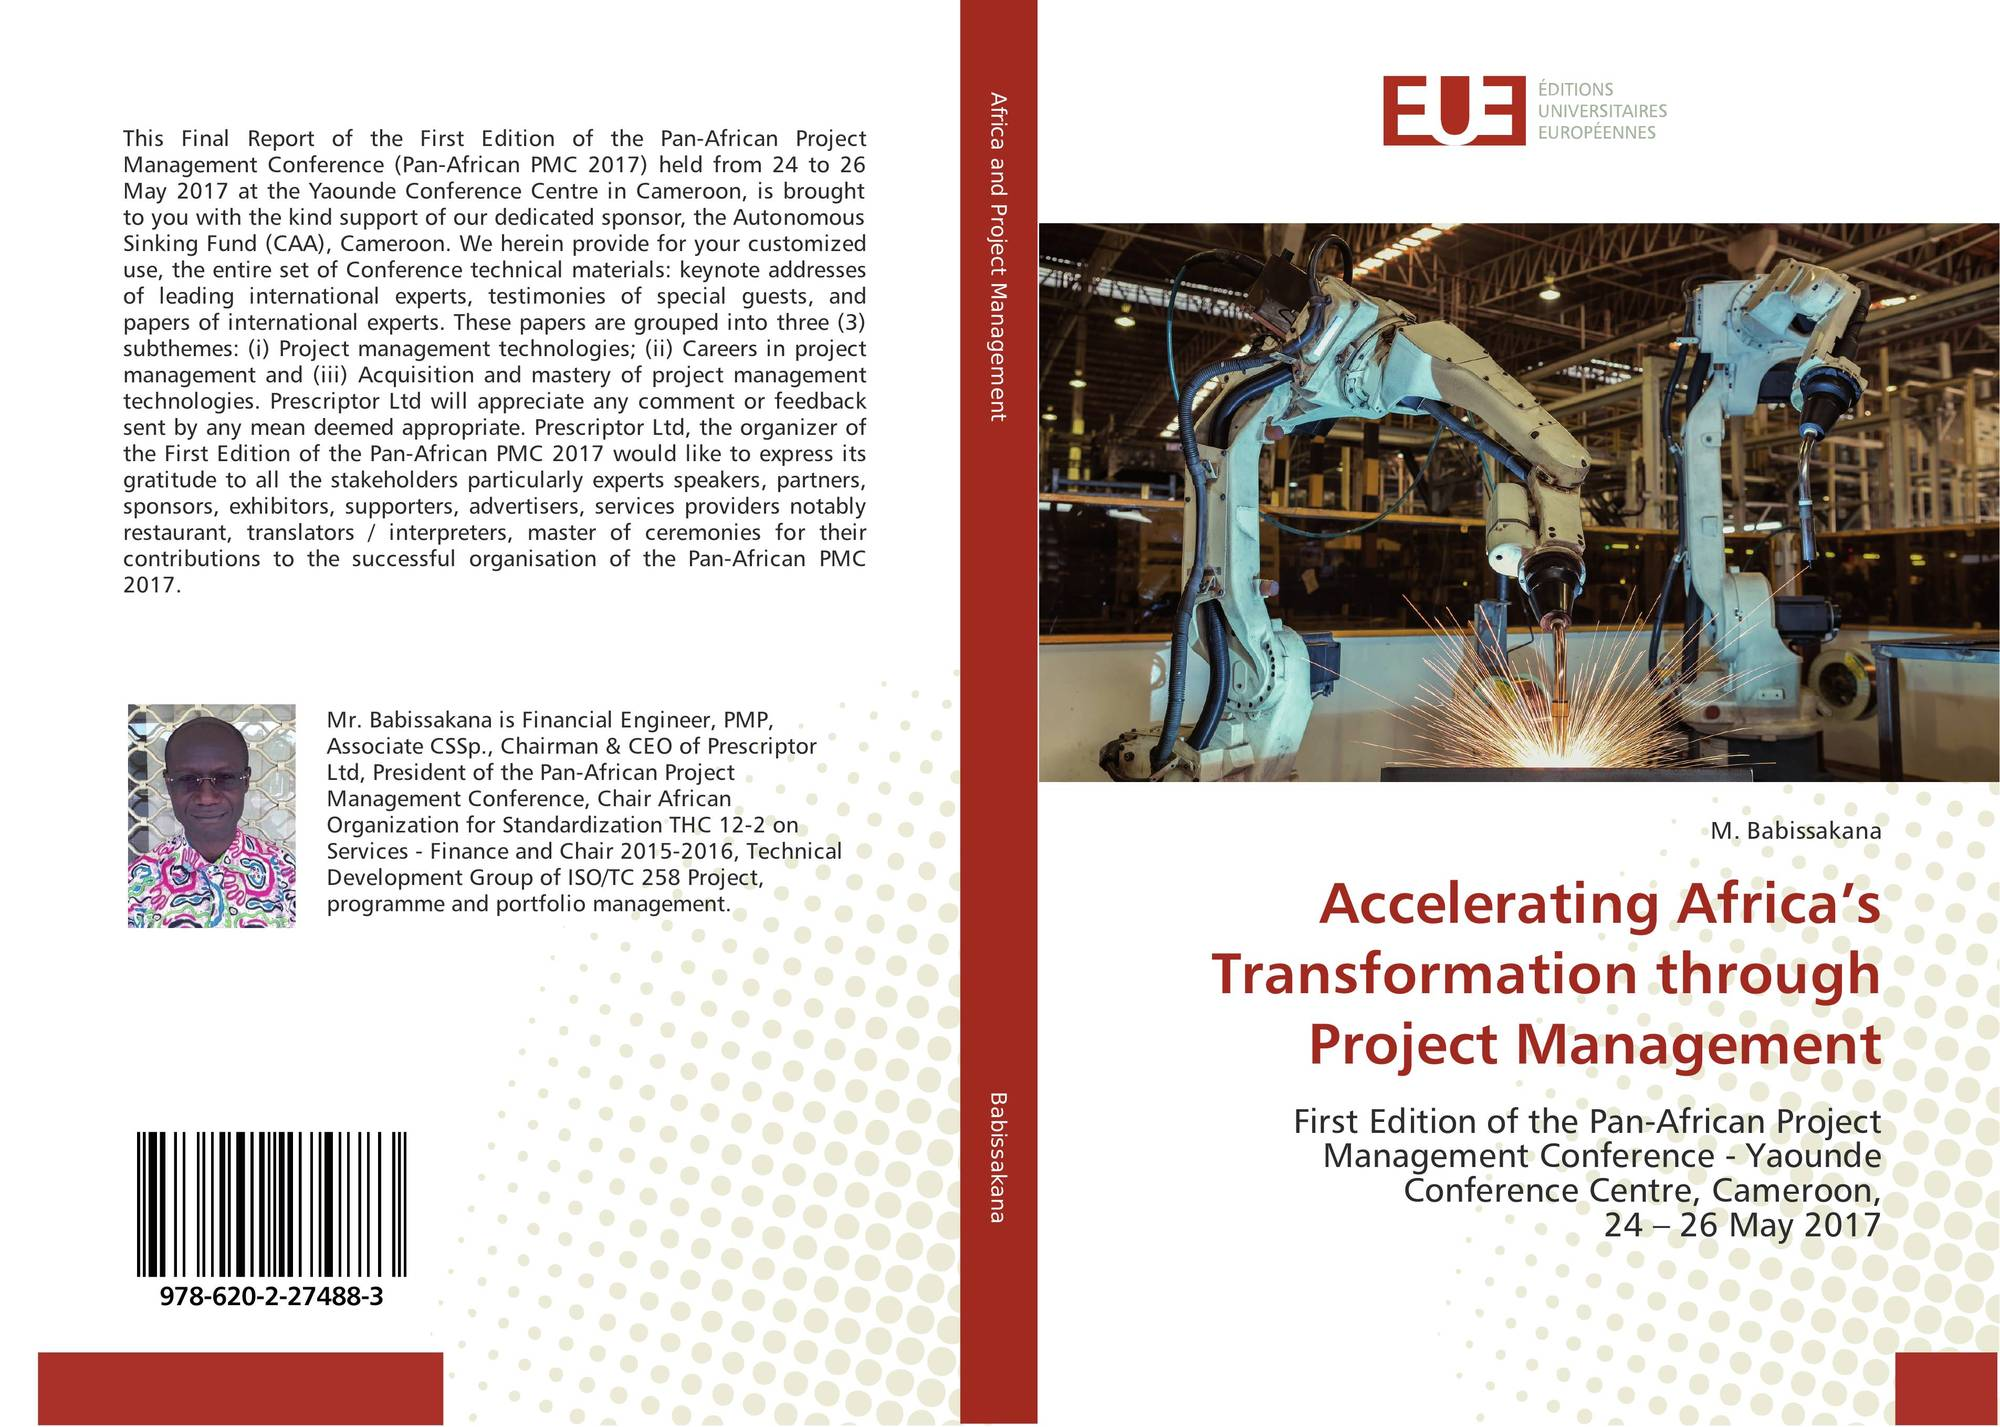 Accelerating Africa's Transformation through Project